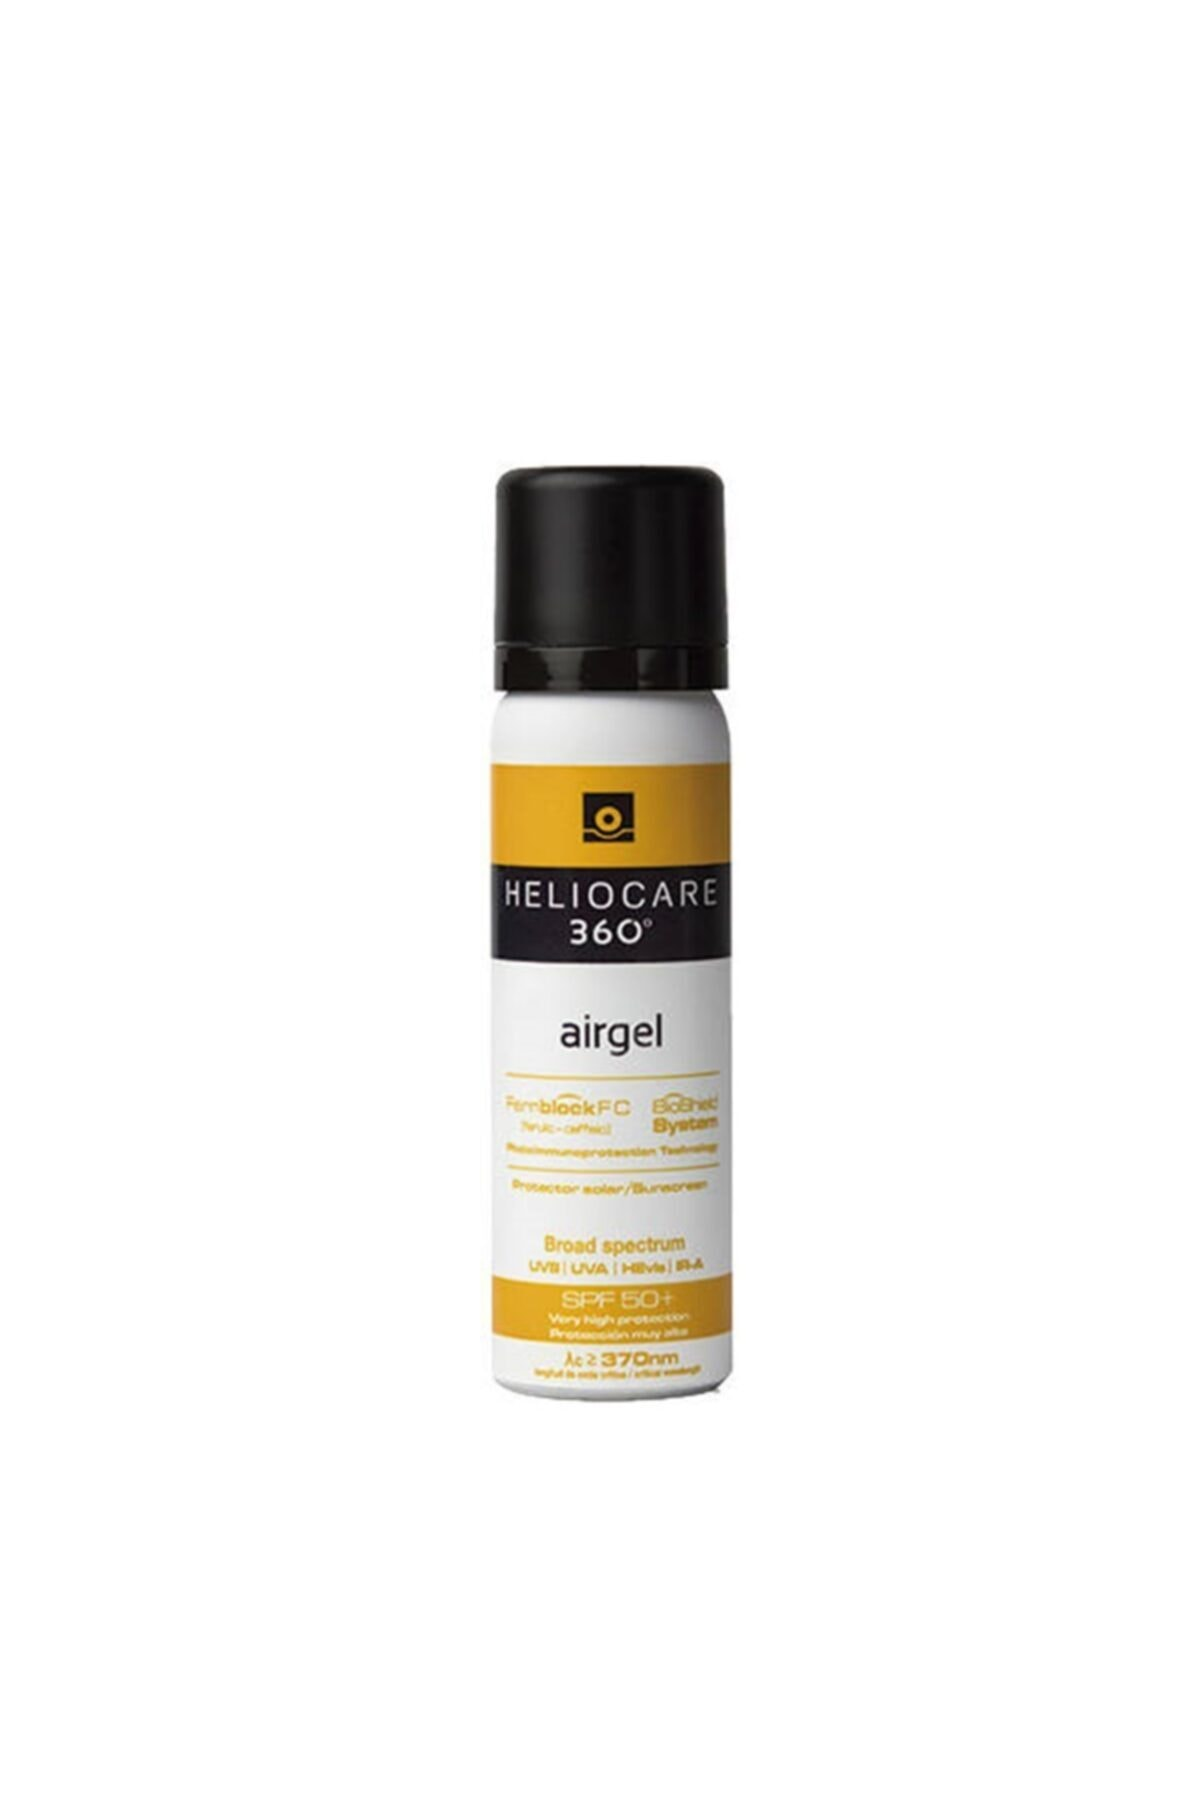 Heliocare 360 Airgel 60 ml 1